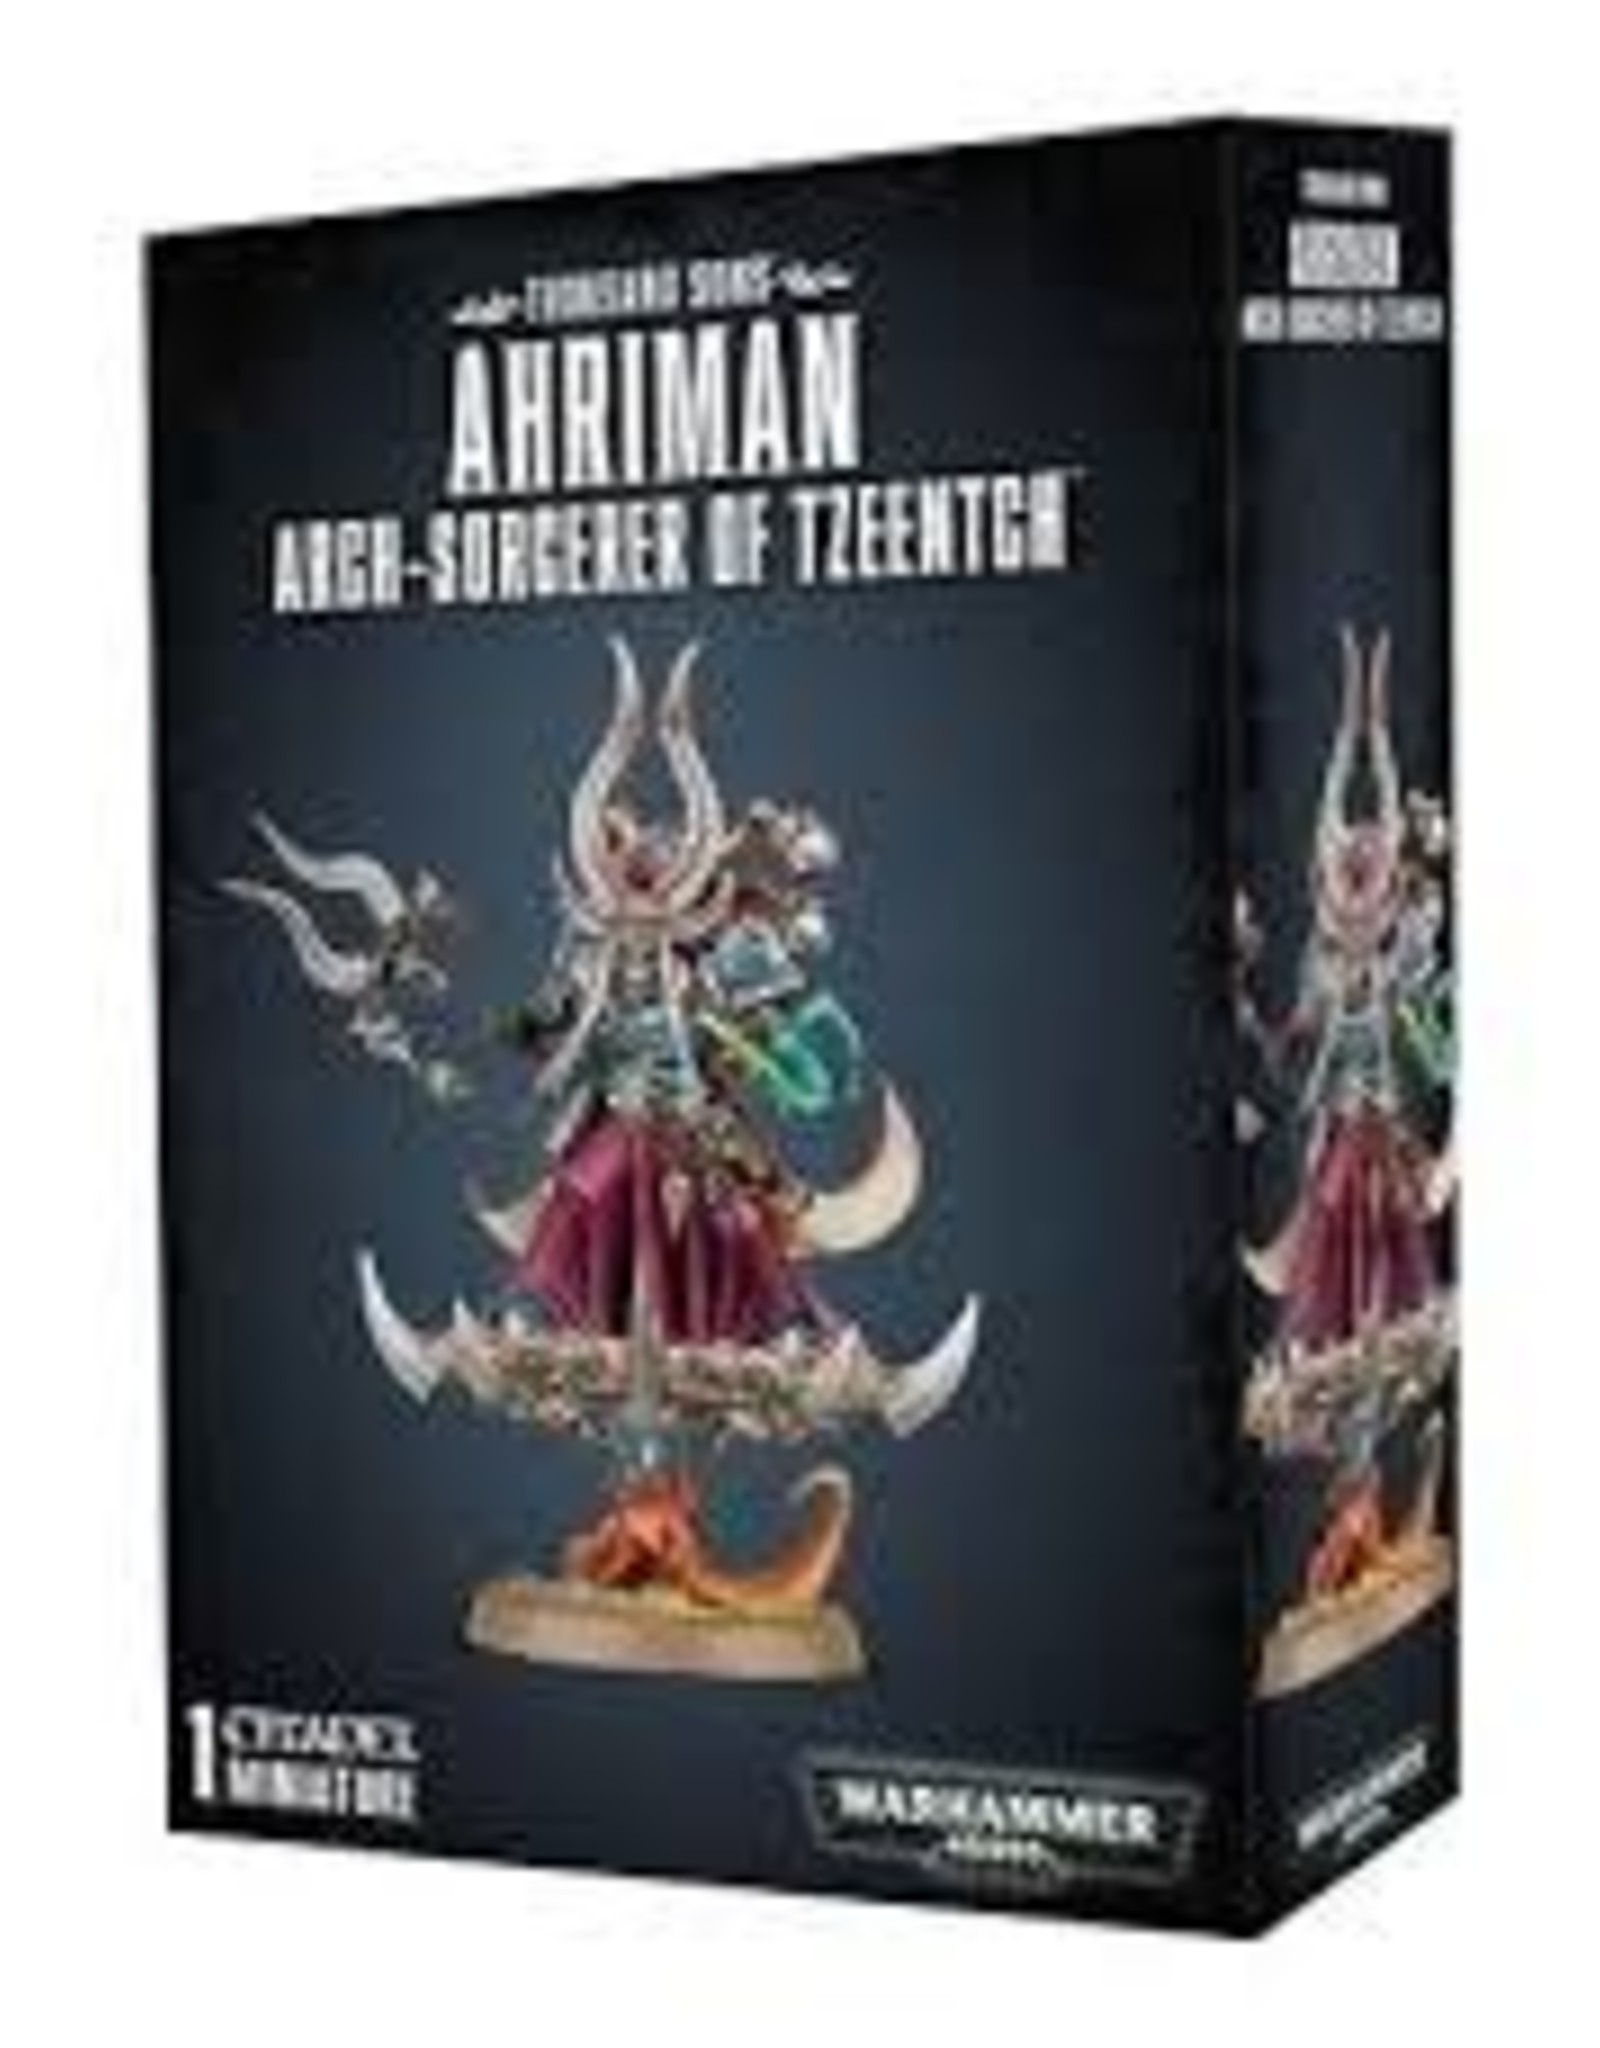 Games Workshop Warhammer Age of Sigmar AHRIMAN ARCHSORCERER OF TZEENTCH